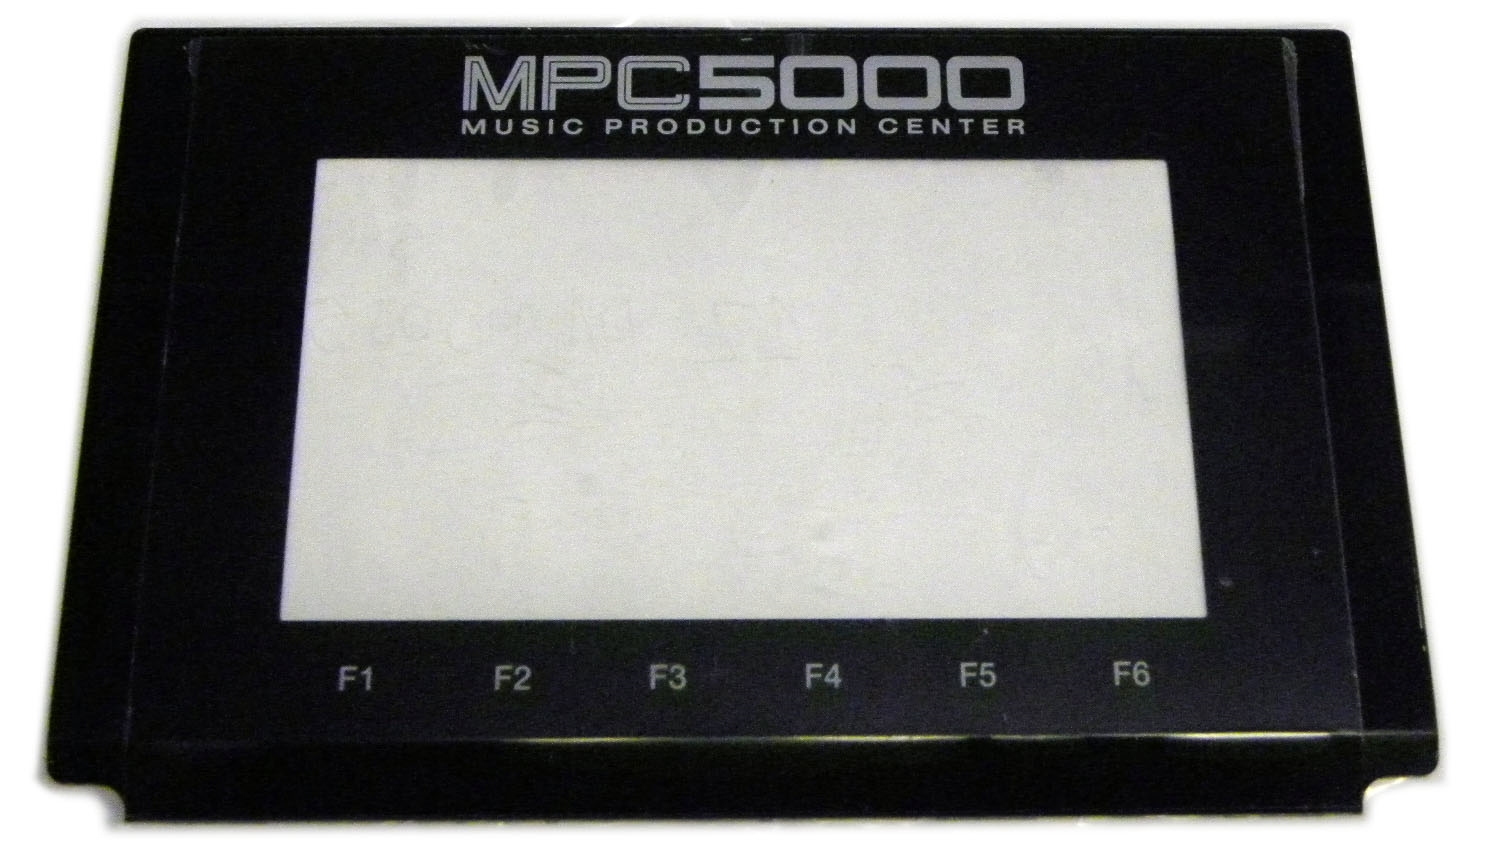 akai-mpc-5000-lcd-window